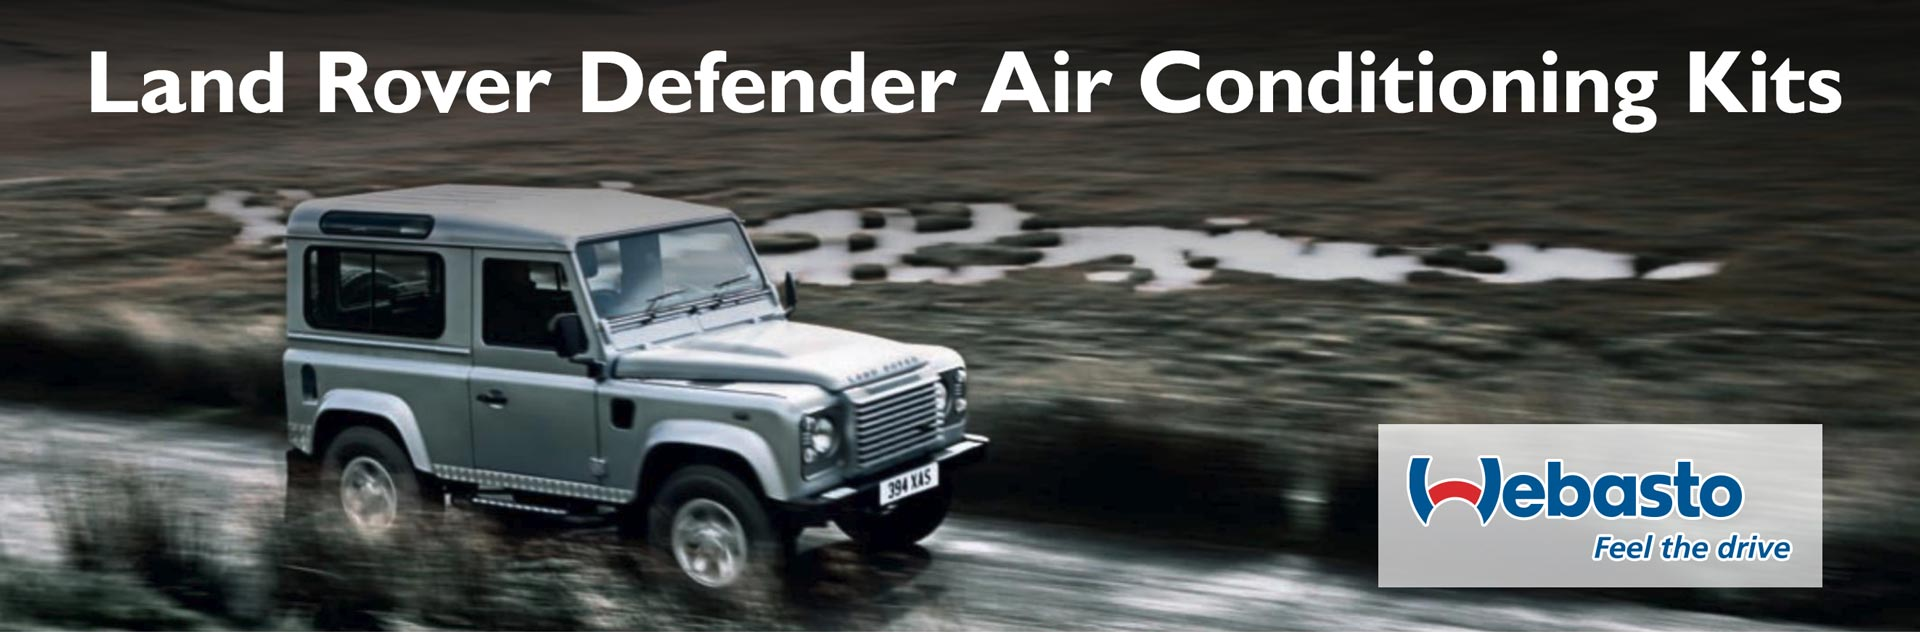 Land Rover Defender air conditioning kits